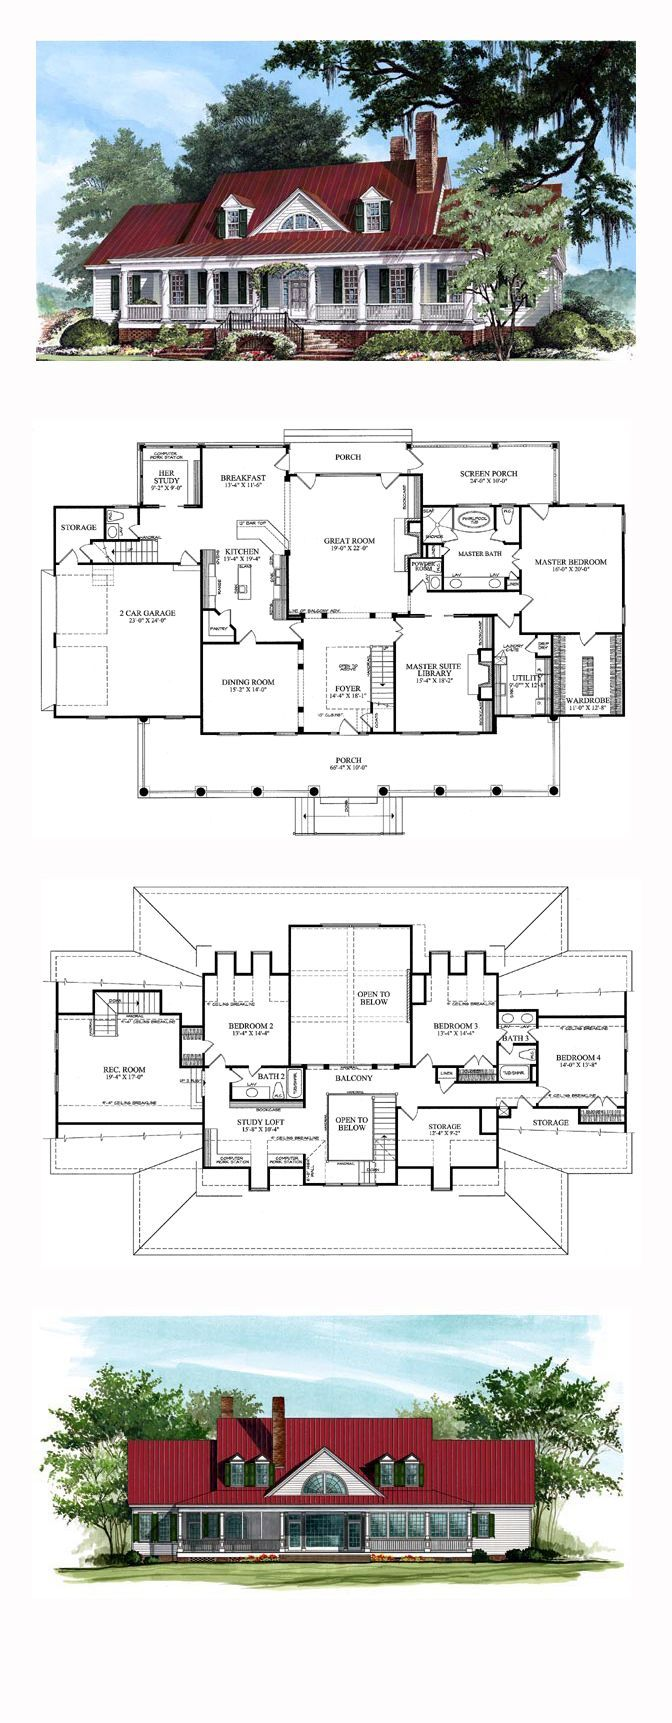 Plantation House Plan 86134 | Total Living Area: 4227 sq. ft., 4 bedrooms, 3 full bathrooms and 2 half bathrooms. #plantationhome